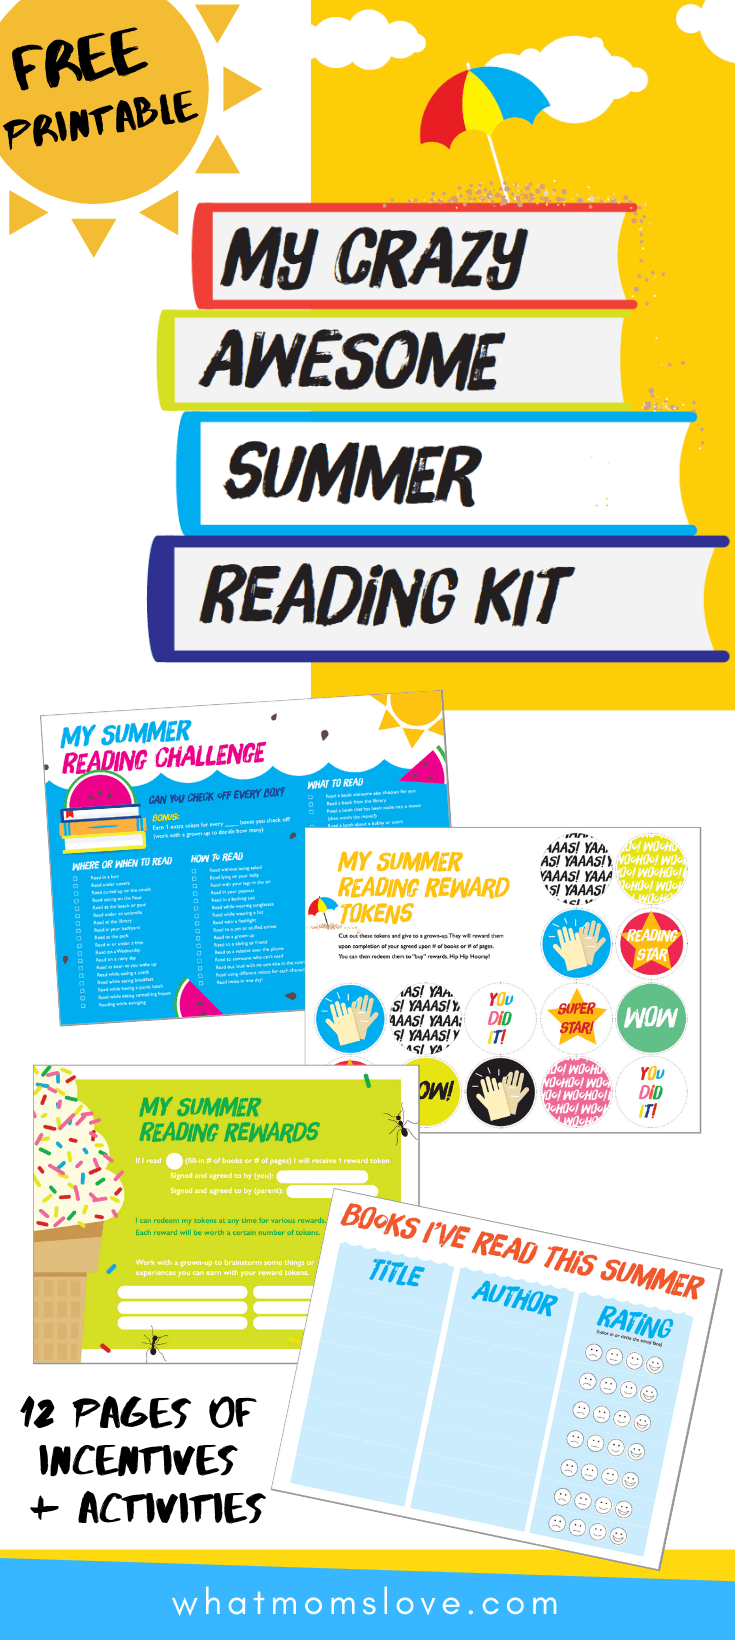 image relating to Books I've Read Printable named How In the direction of Purchase Your Young children Towards Read through This Summer season (With No cost